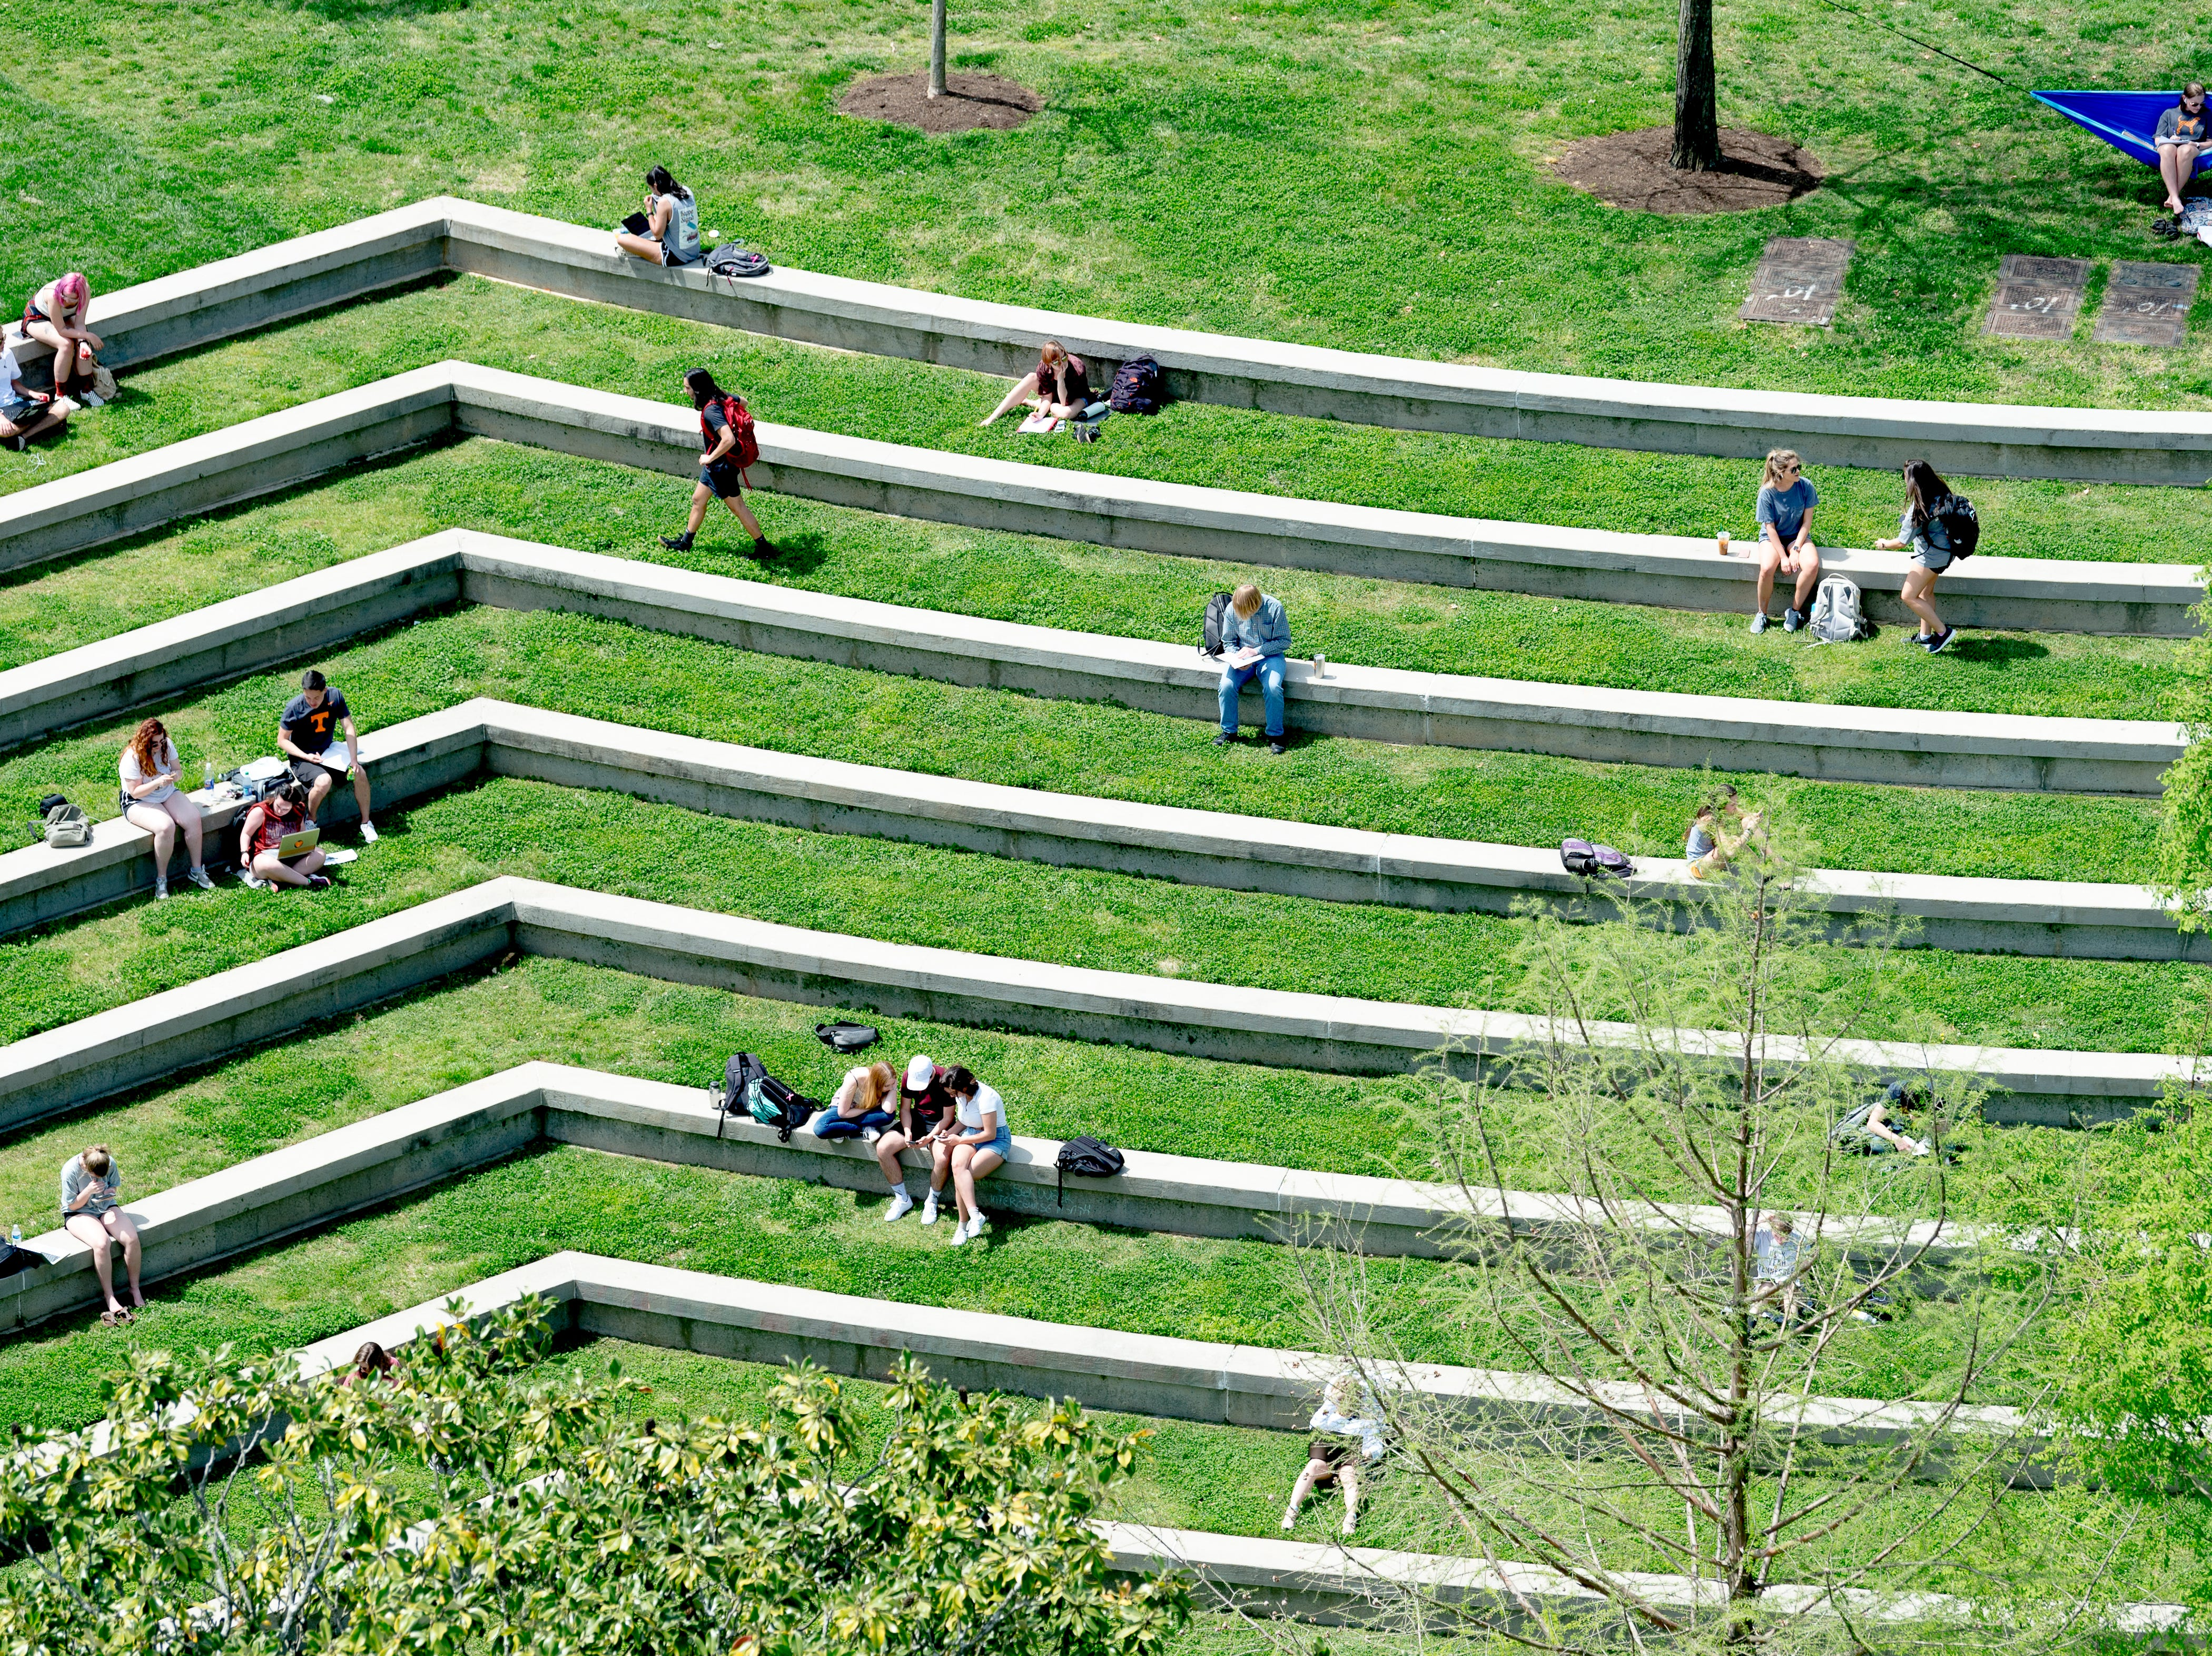 Students soak up some sun at the amphitheater in Knoxville, Tennessee on Thursday, April 11, 2019.